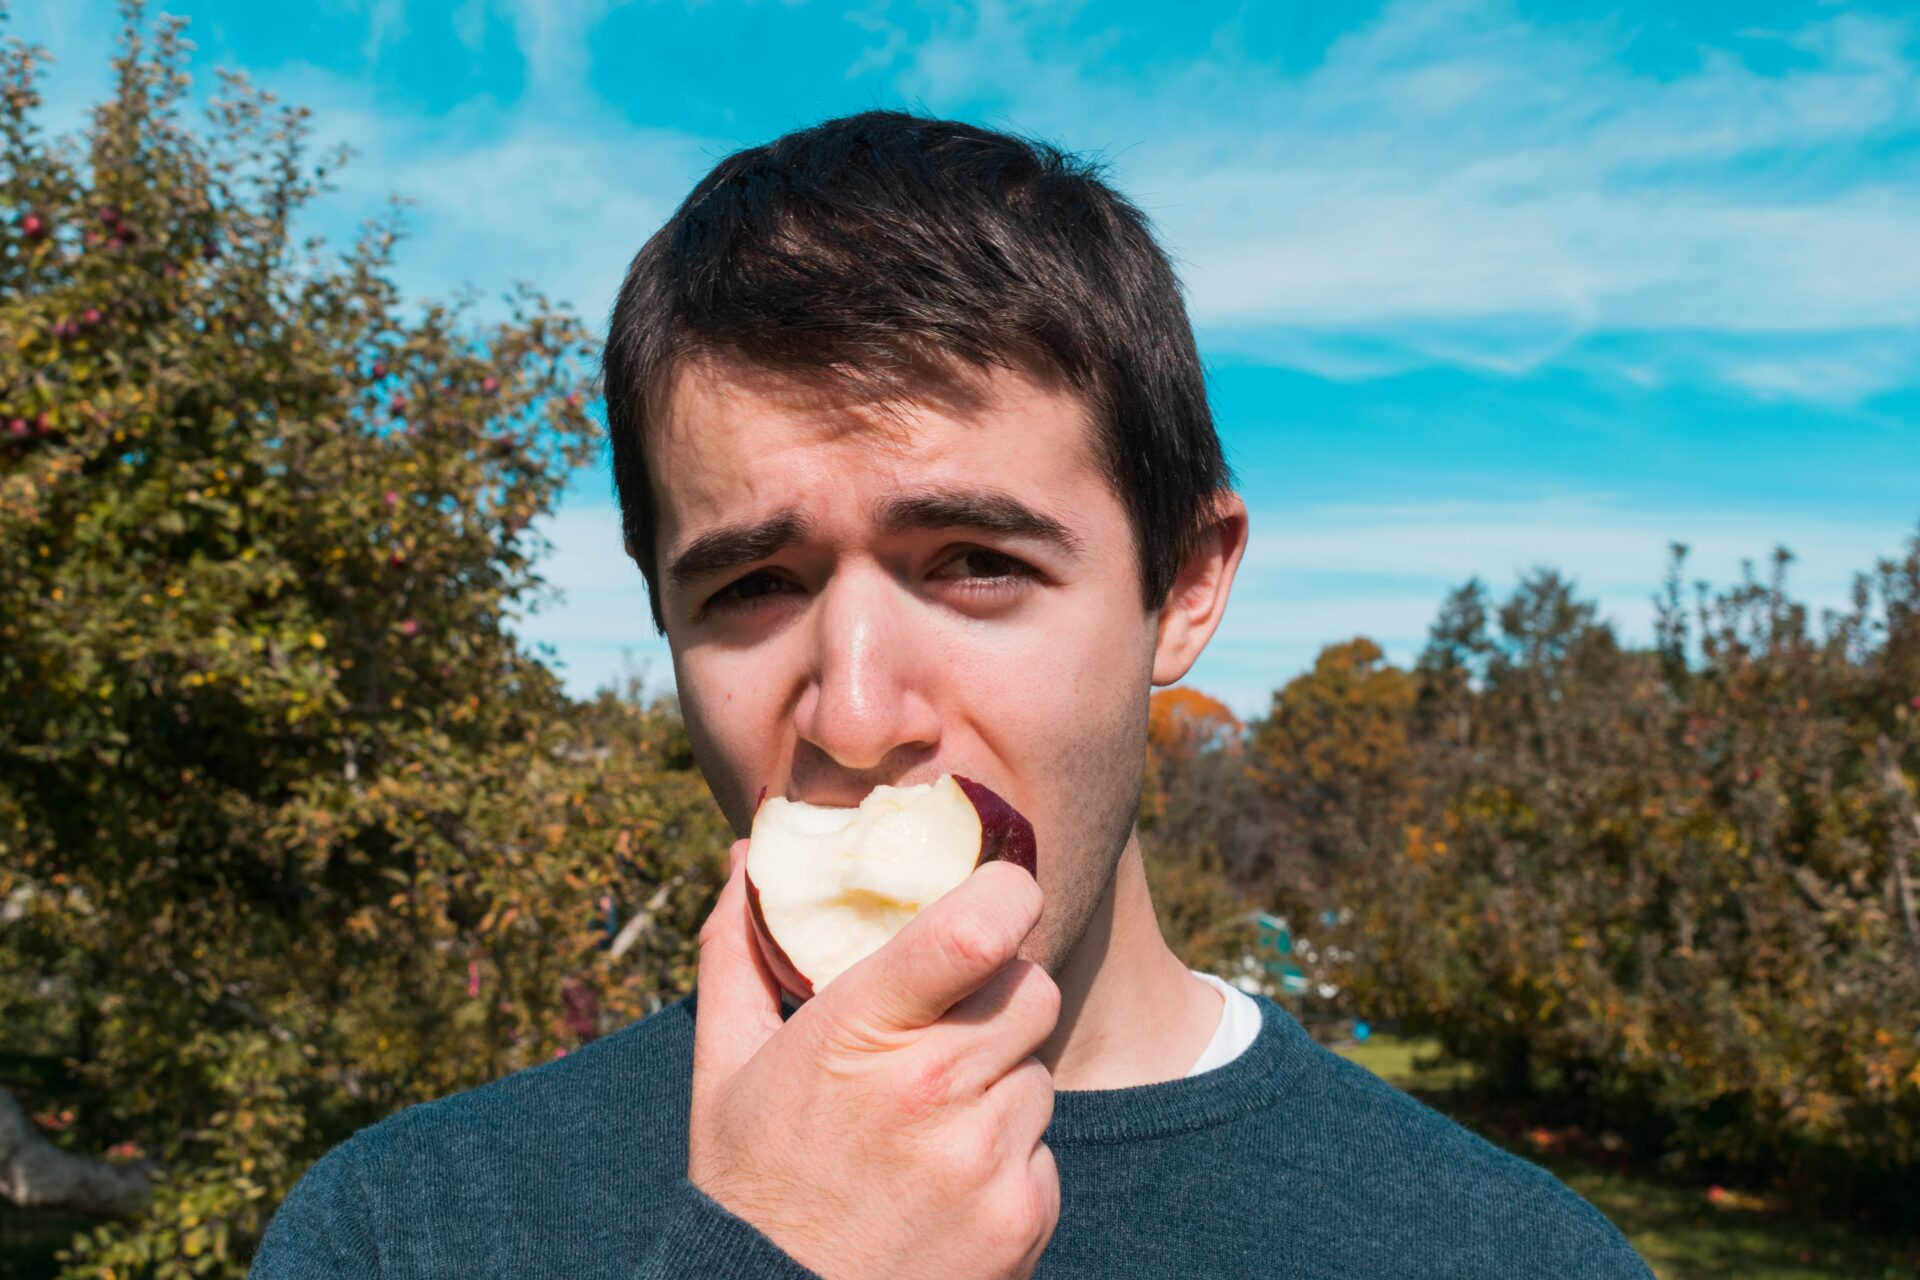 male student biting an apple with the blue sky behind him